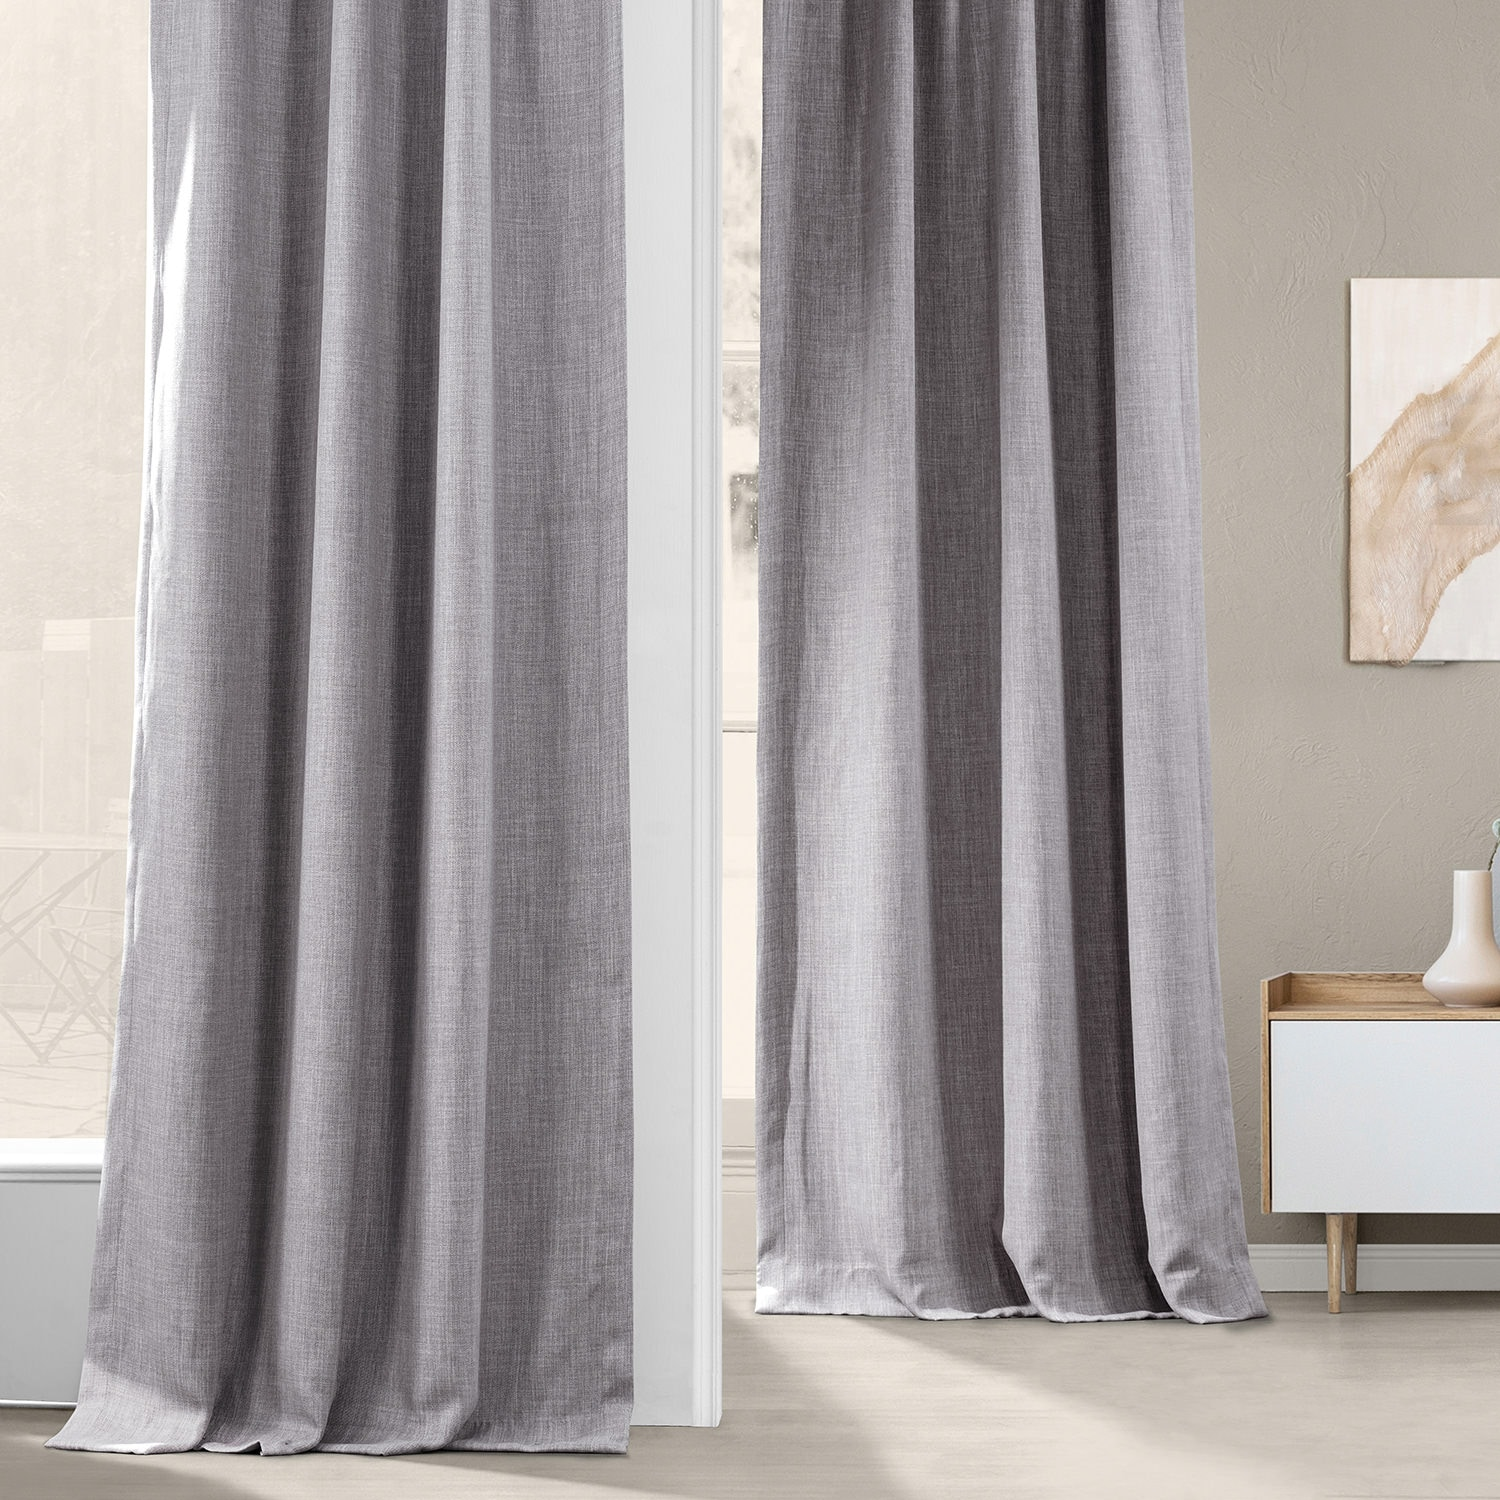 Clay Faux Linen Blackout Room Darkening Curtain